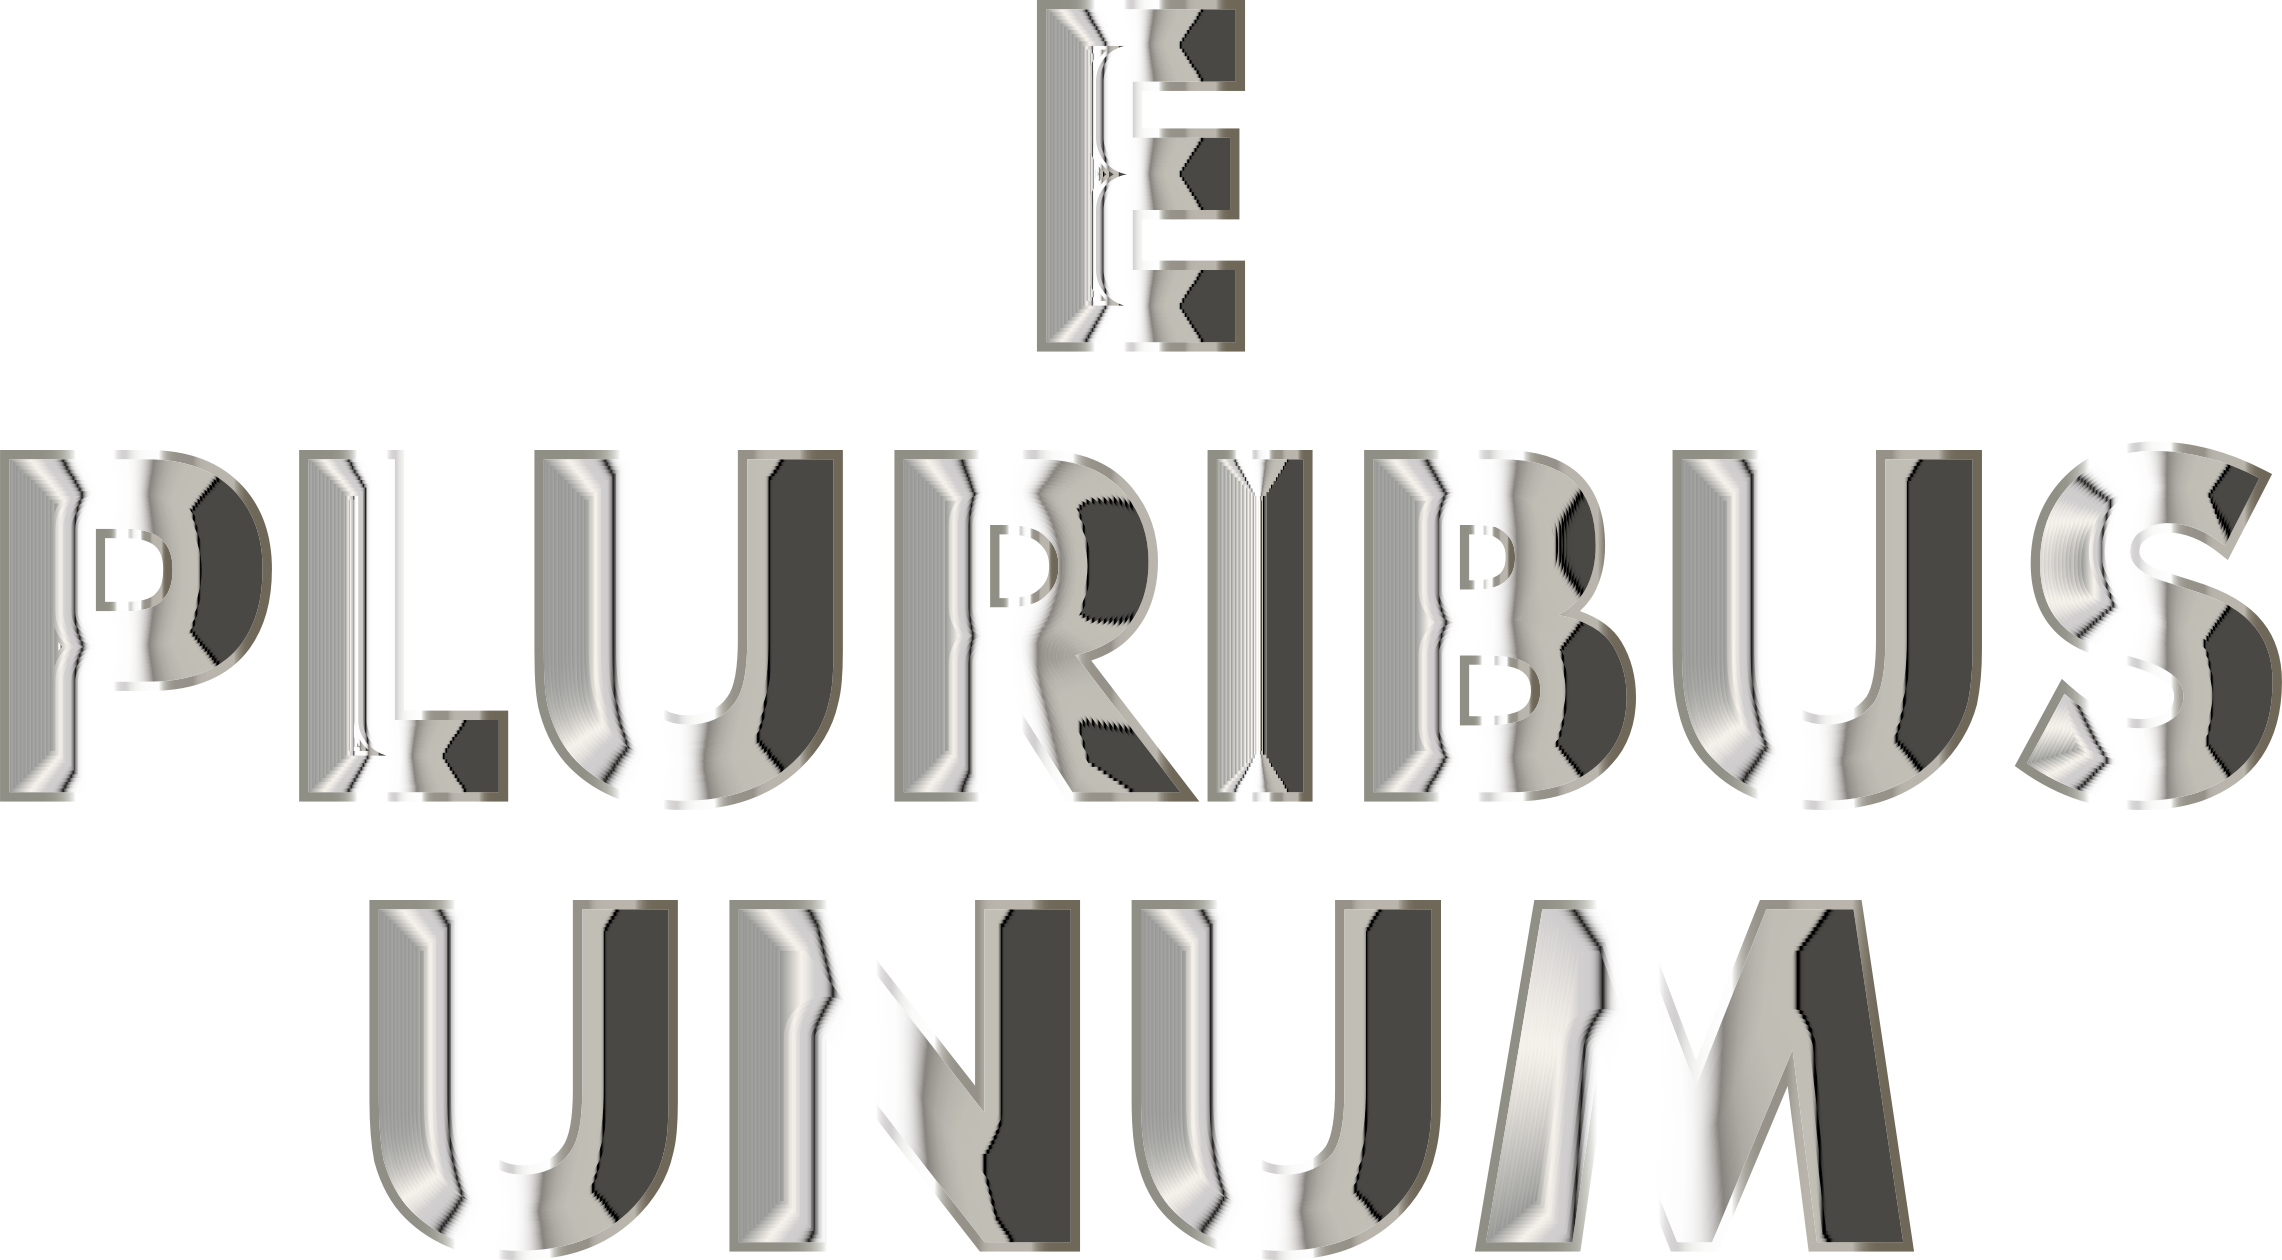 E Pluribus Unum Chrome Typography No Background by GDJ